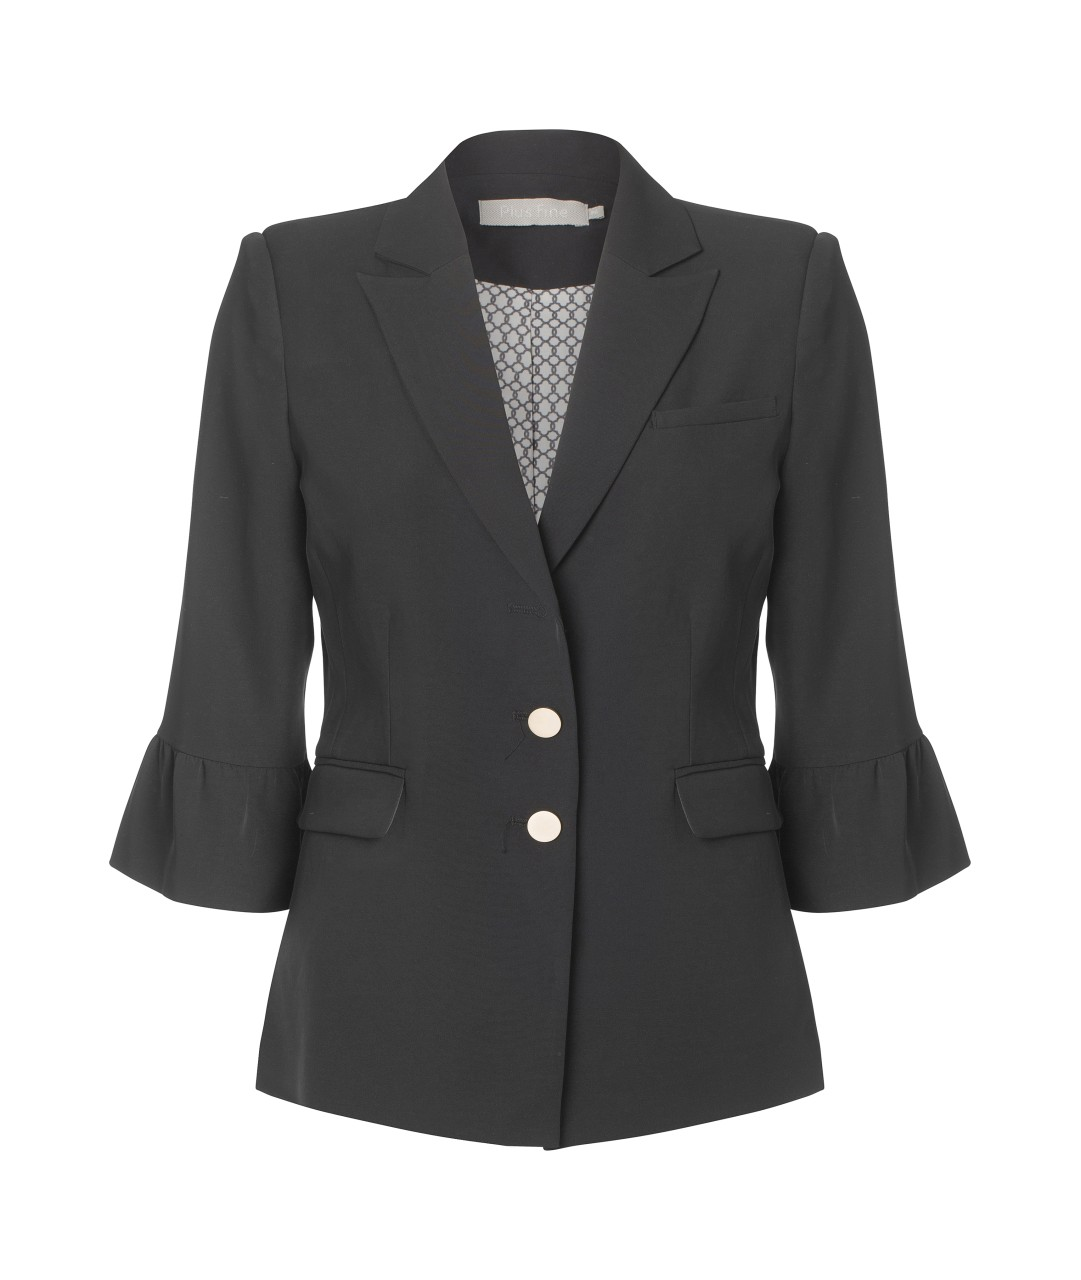 Plus Fine - Blazer  - Ione Fan - schwarz